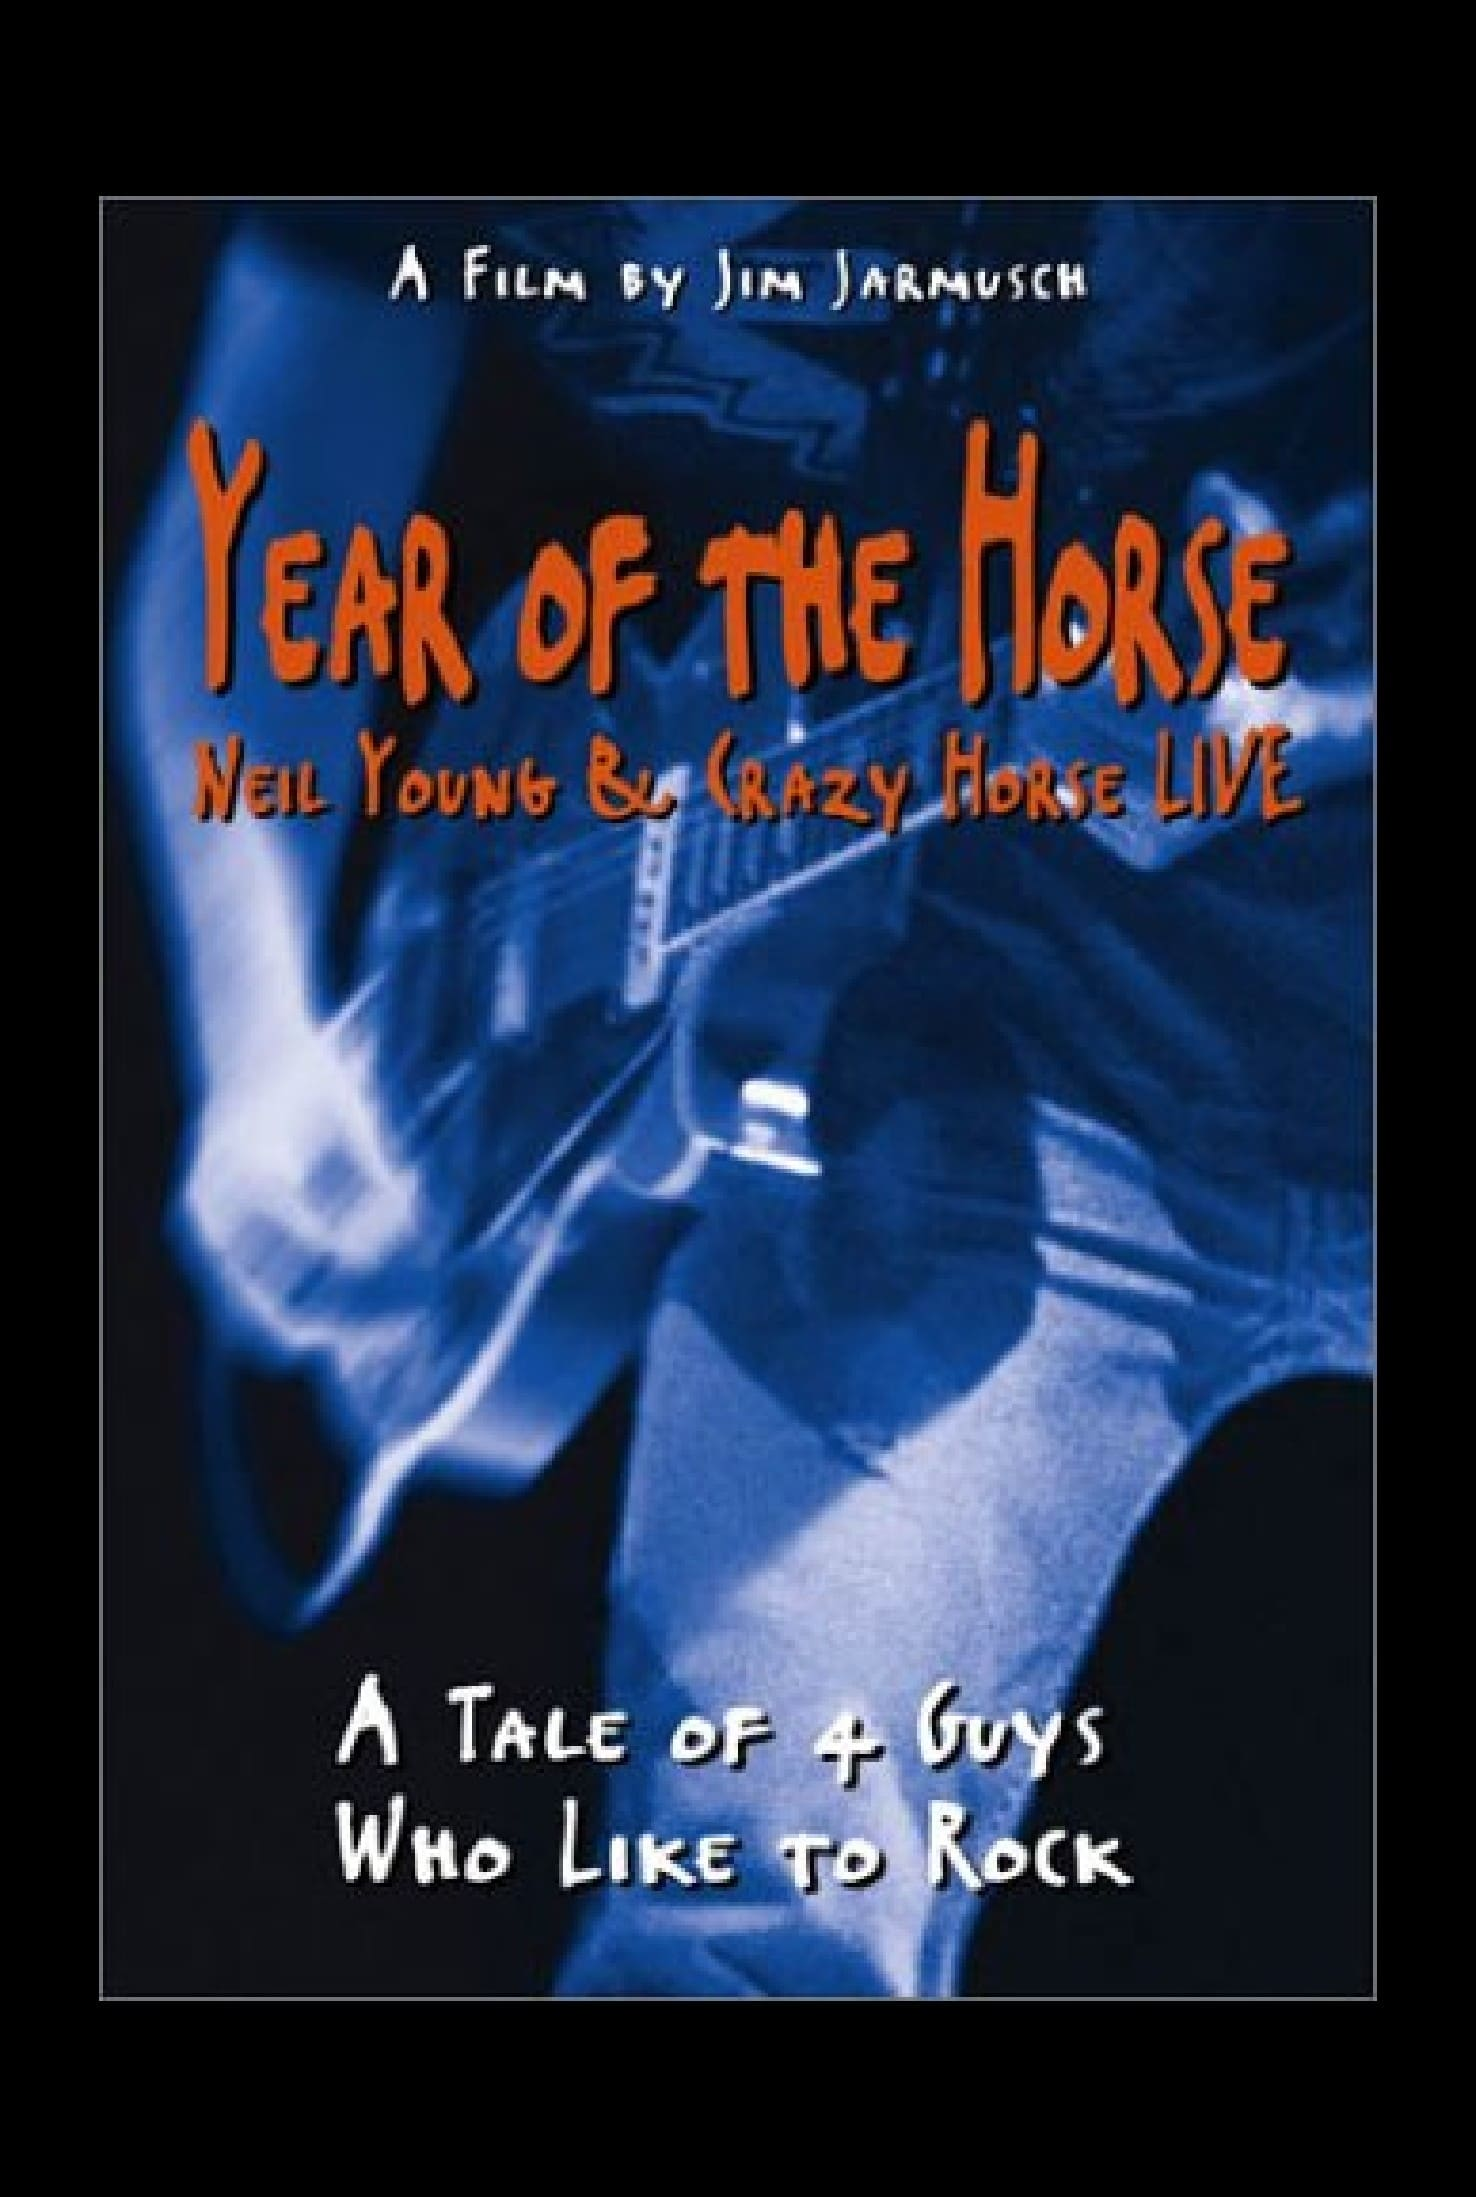 Year of the Horse: Neil Young and Crazy Horse Live (1997)